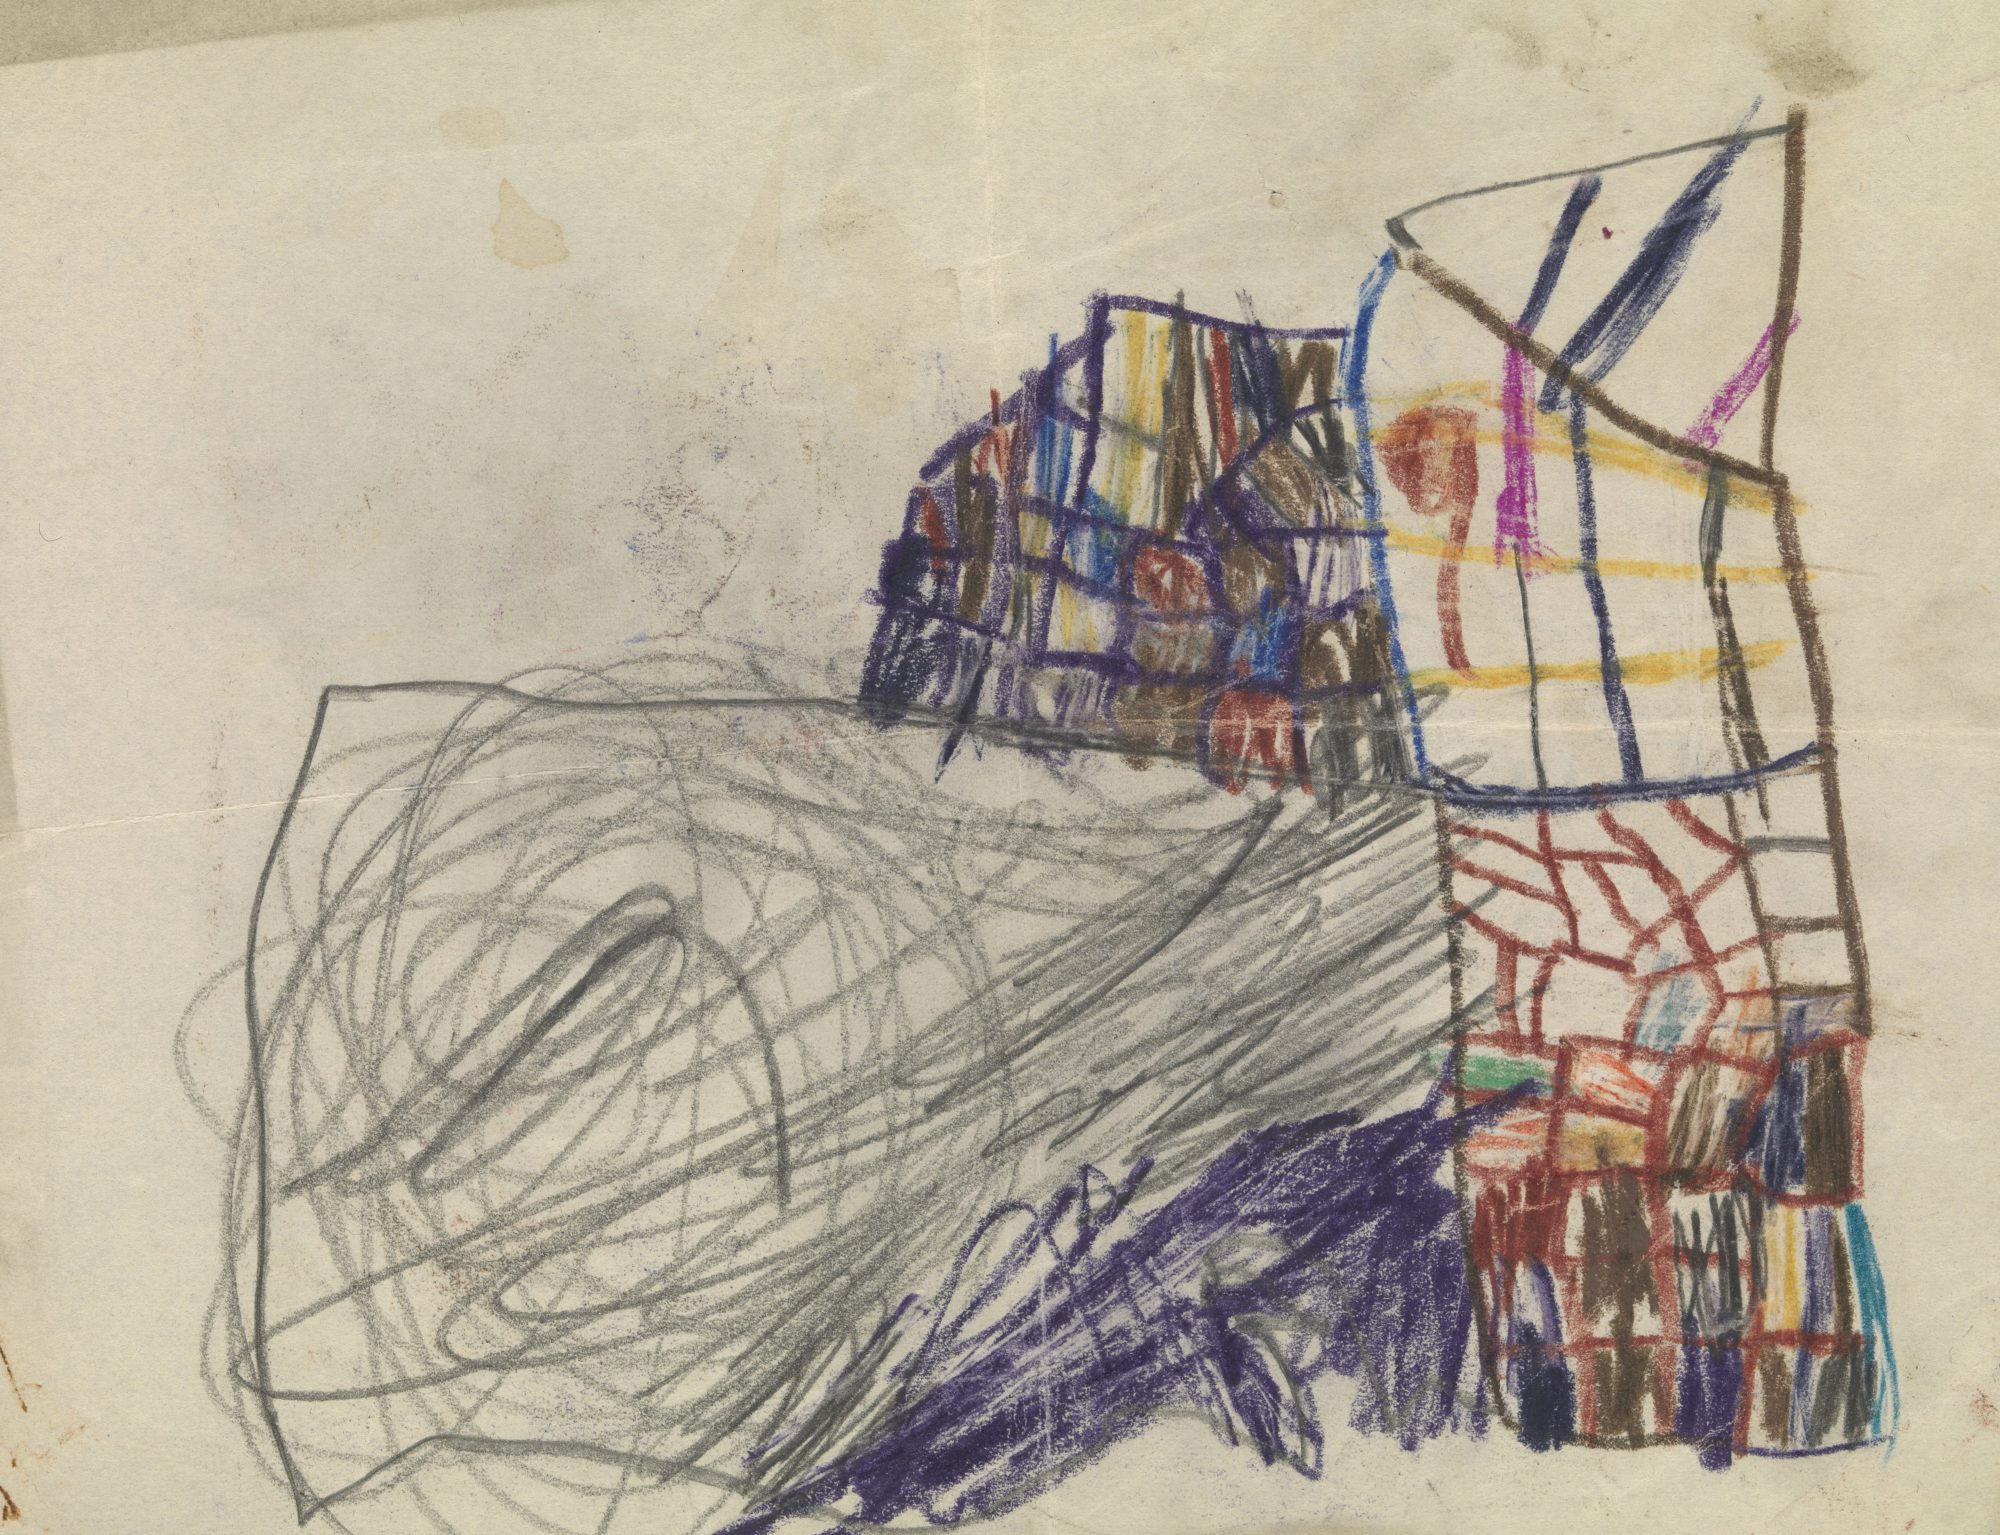 Colourful drawing by one of Klein's child patients